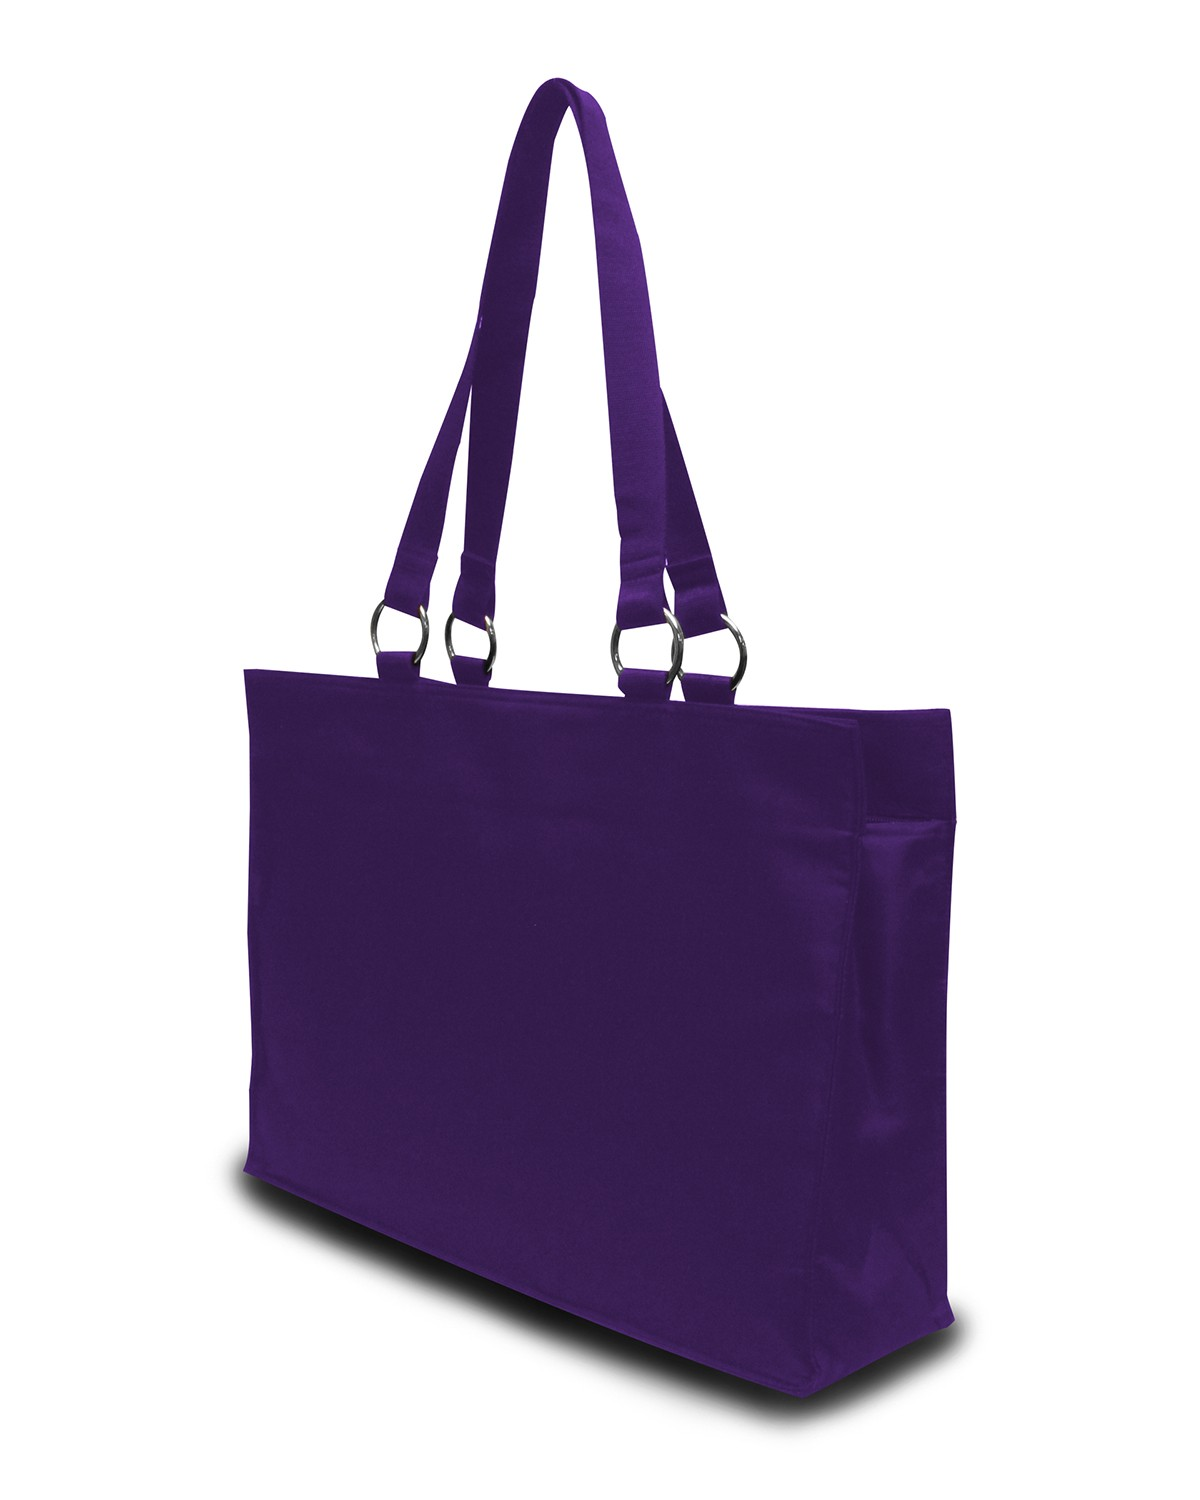 8832 Liberty Bags PURPLE